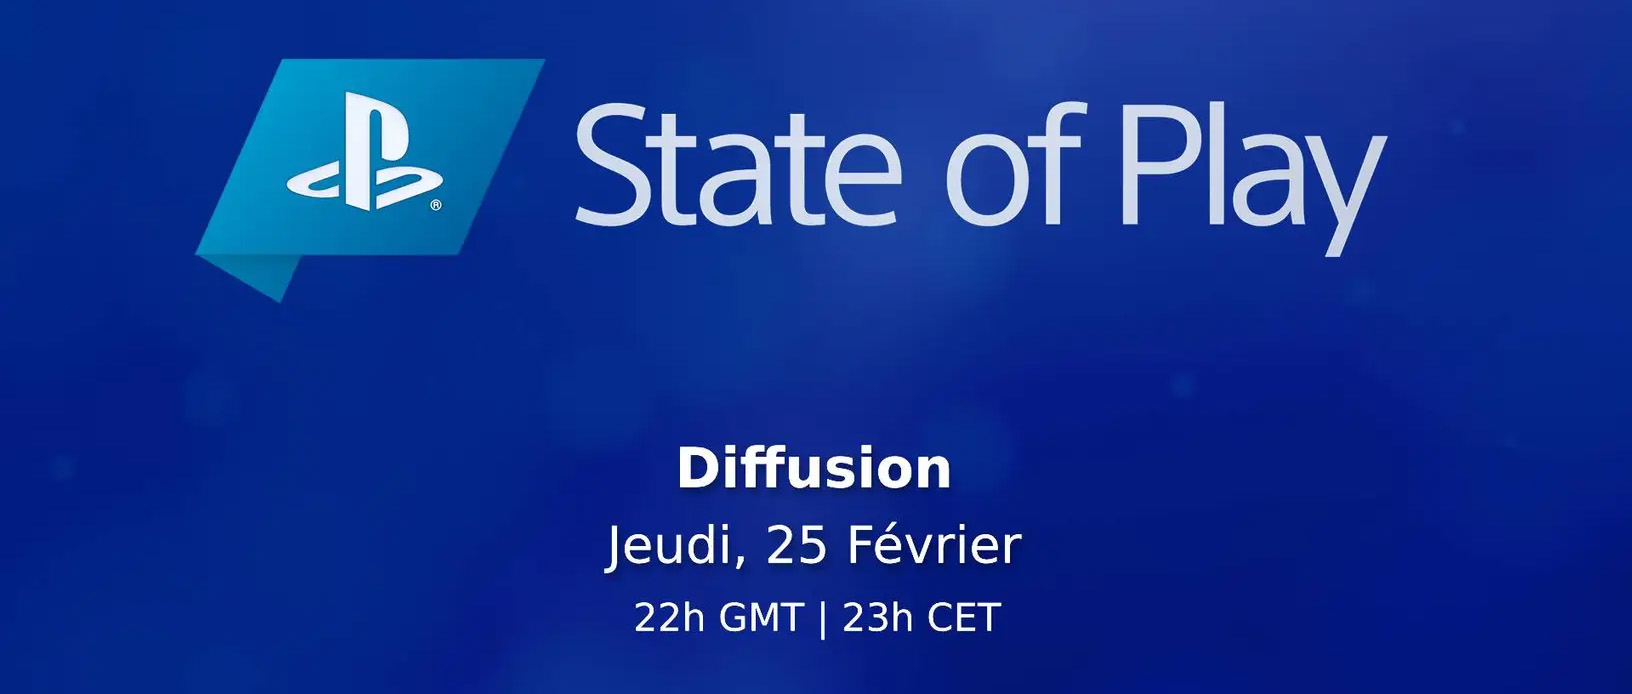 State of Play - Sony - 25 Février 2021